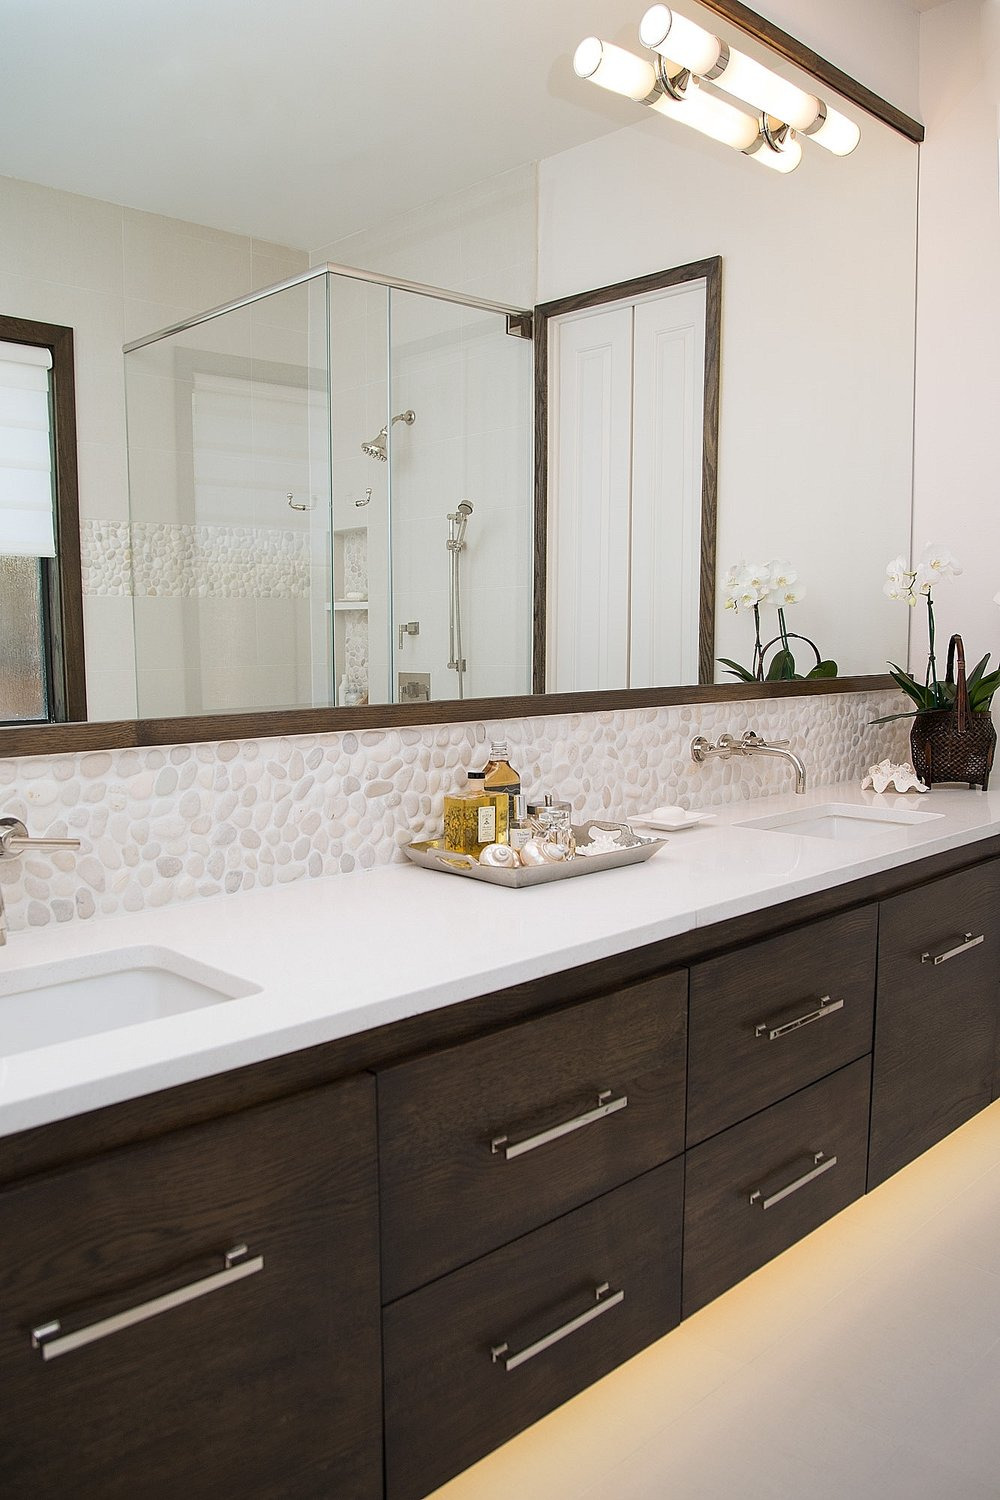 Decorative Mirrors for Bathroom Vanity Awesome 11 Creative Ways to Make A Small Bathroom Look Bigger — Designed